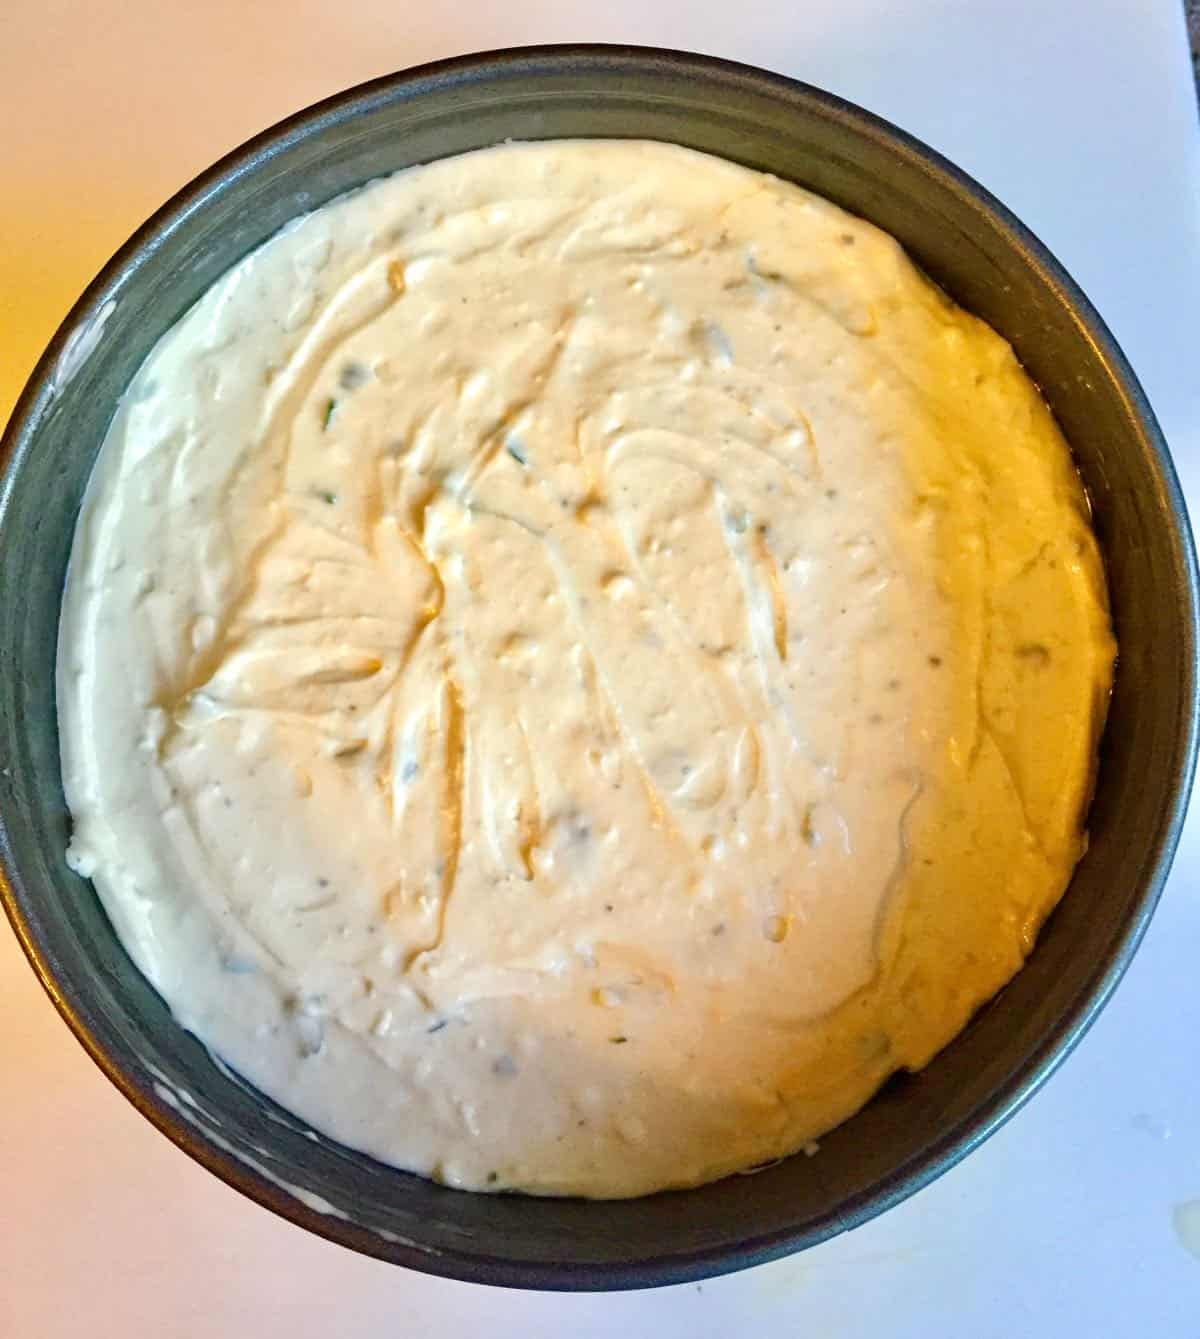 Cheesecake batter in a springform pan.